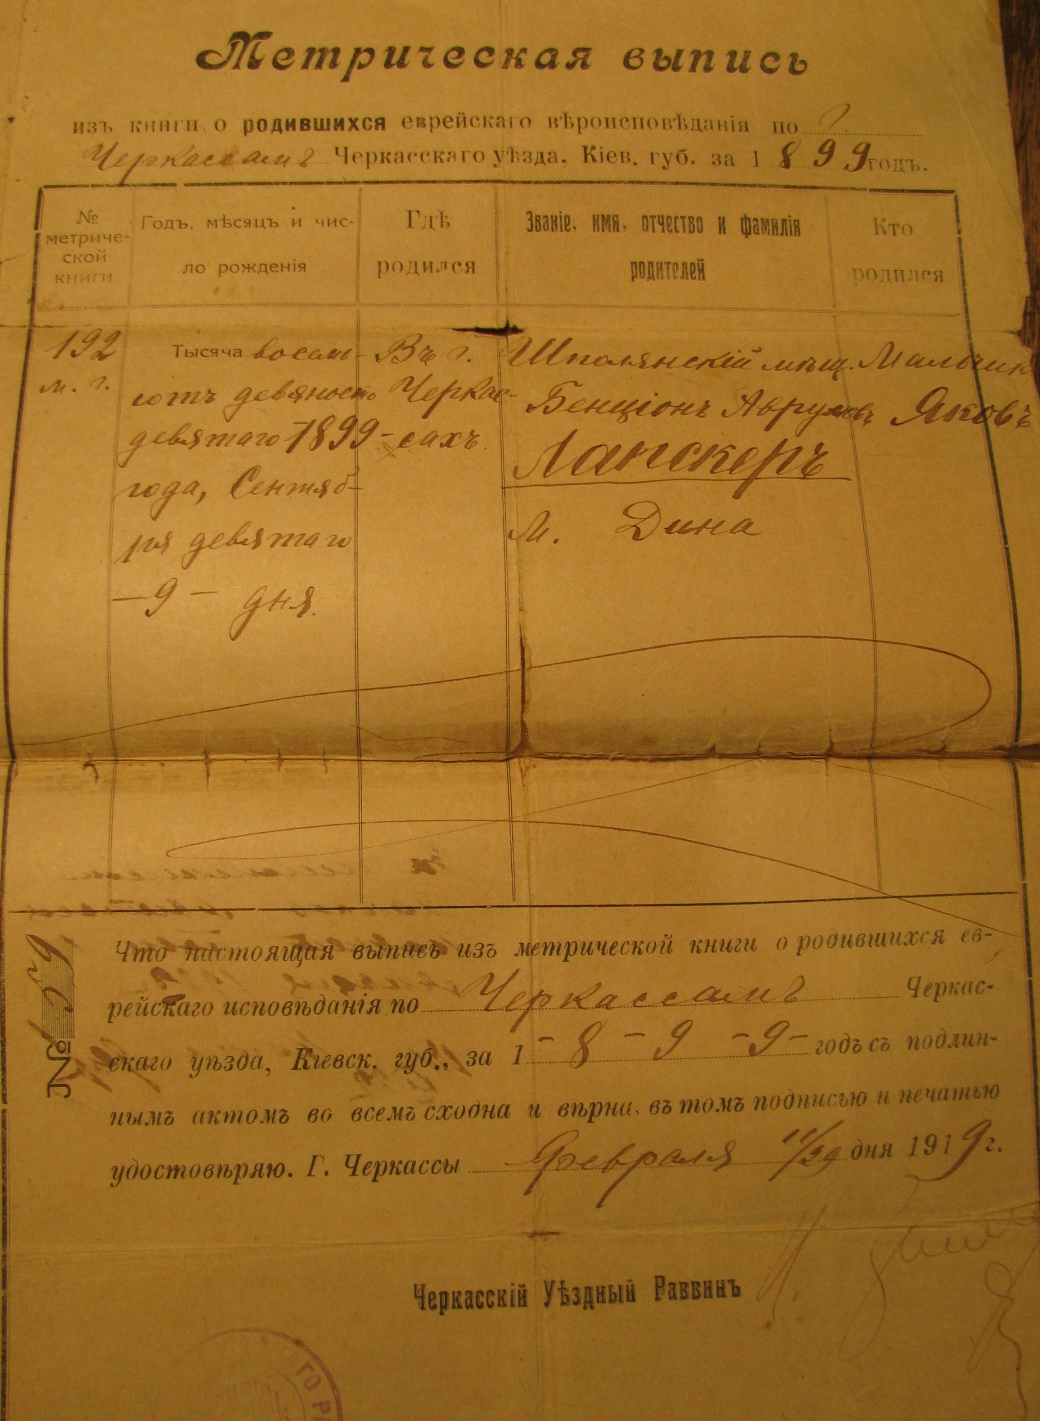 Extract from Cherkassy metric book about the birth of Yacob Labsker, son of Bentsion and Dina in September 9, 1899.